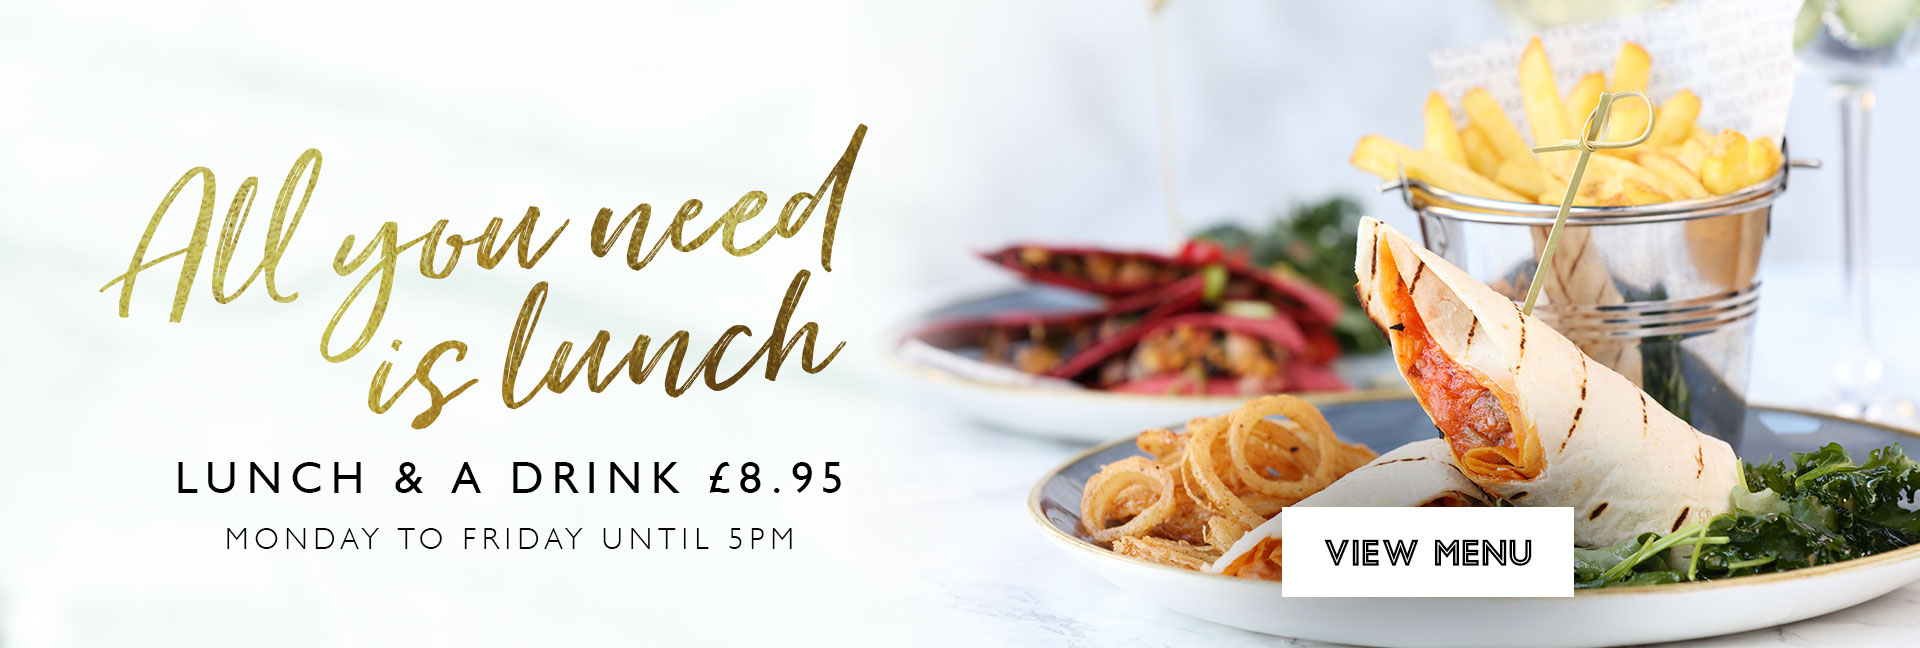 Lunch Offer at All Bar One Brighton